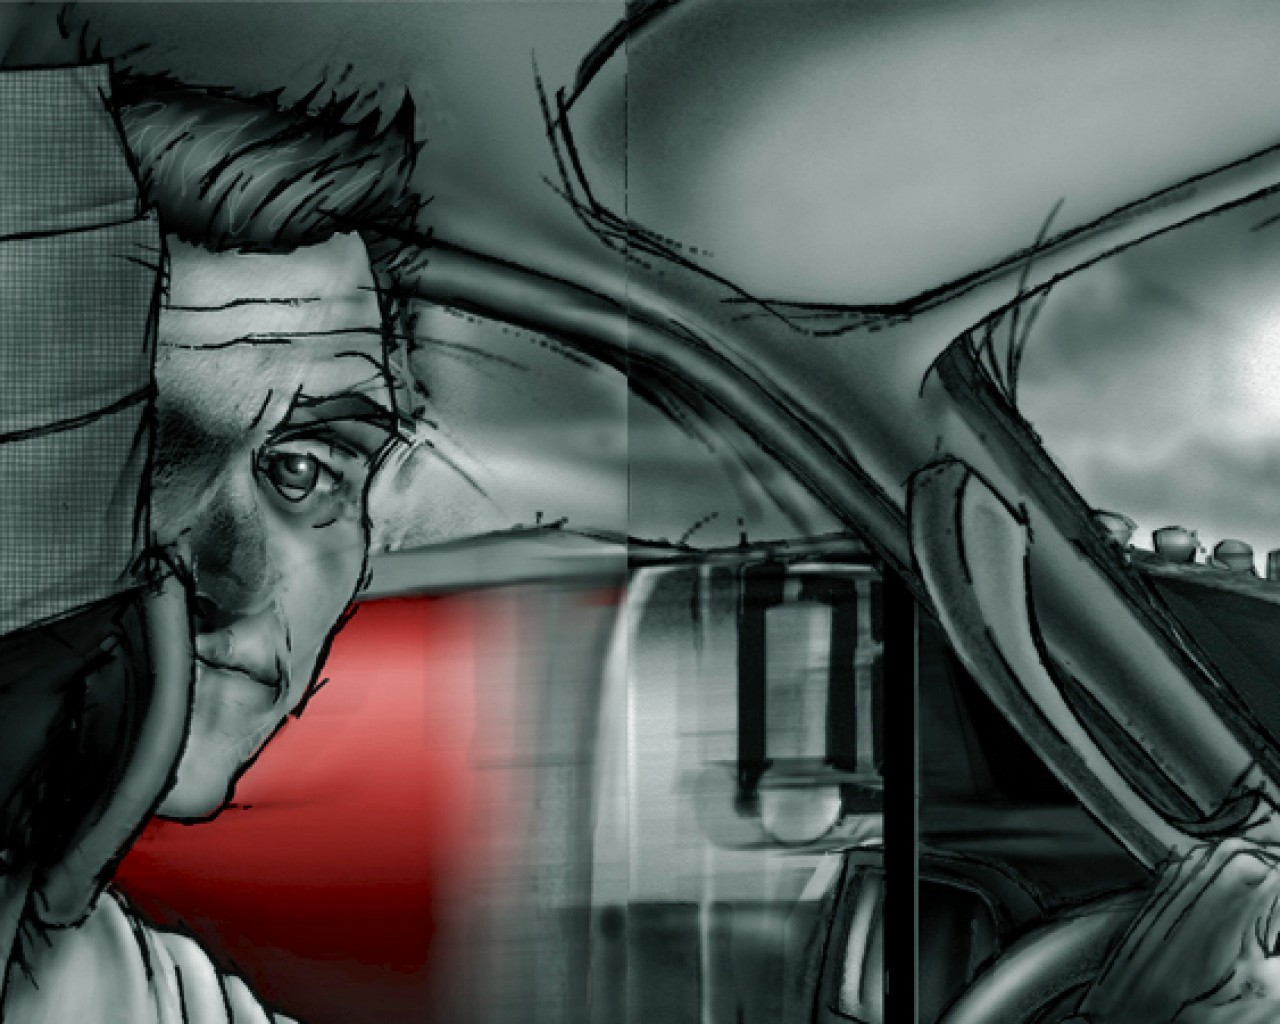 Preview Image 2 for THE FLOOD - a salvation myth